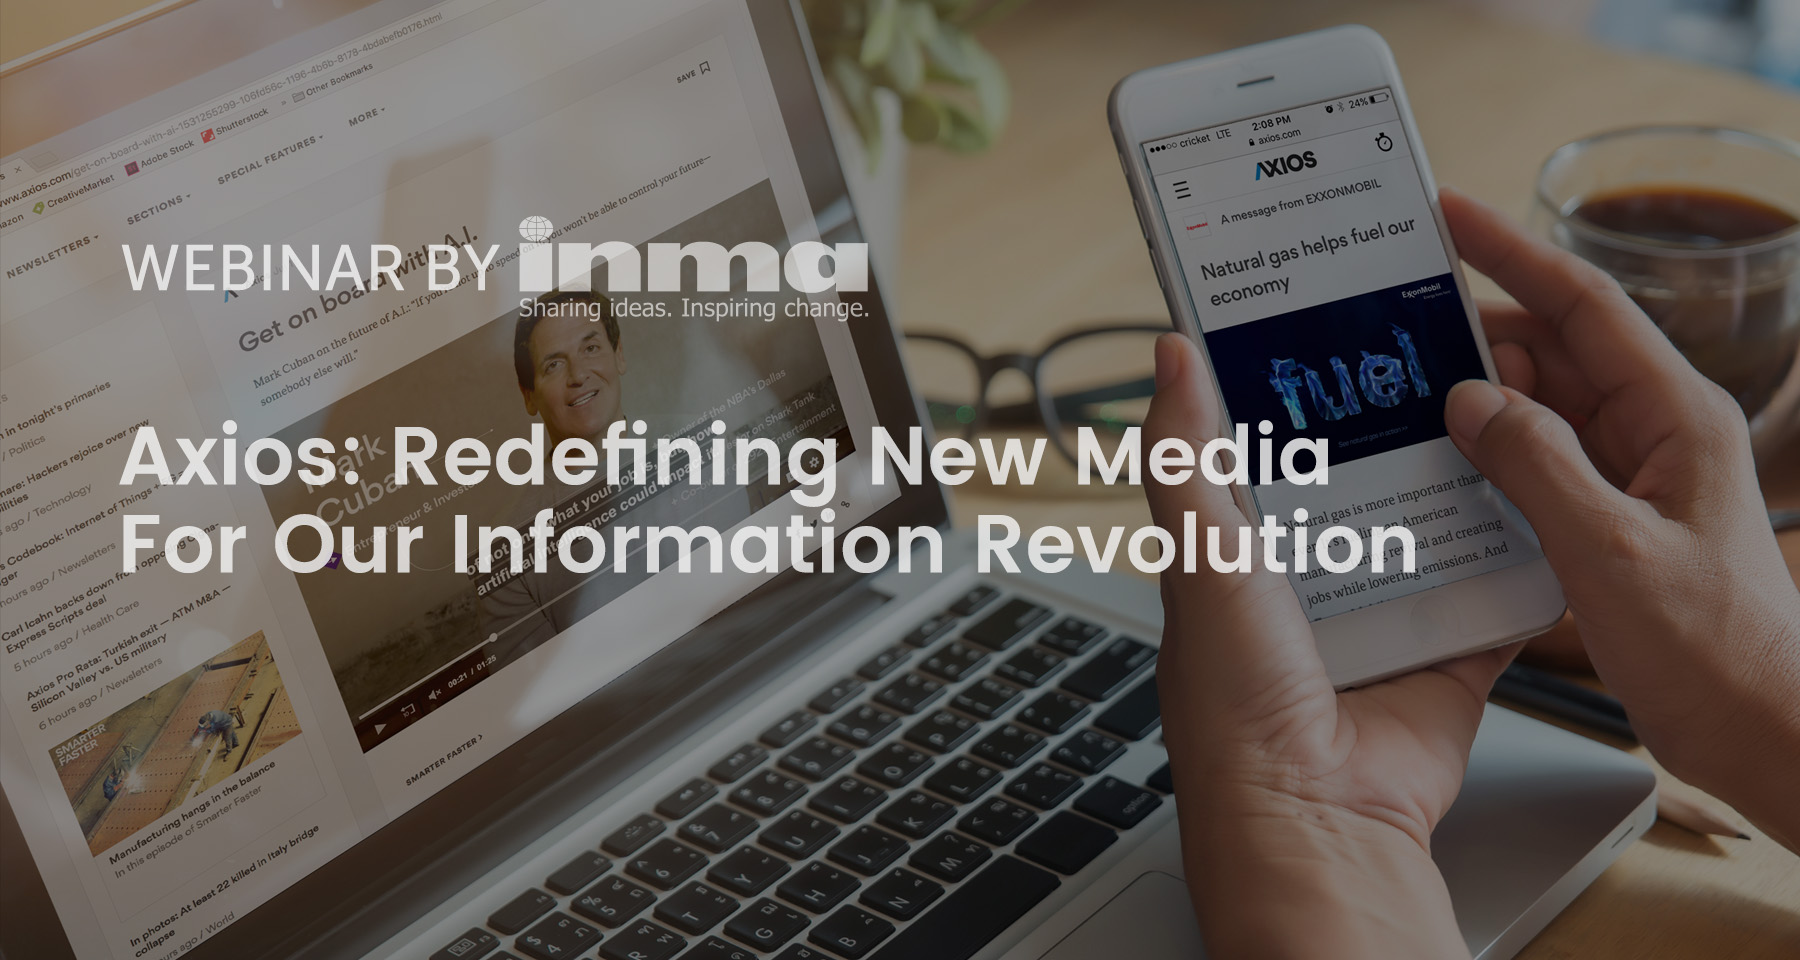 Upcoming INMA Webinar: How Axios is redefining new media for the information revolution